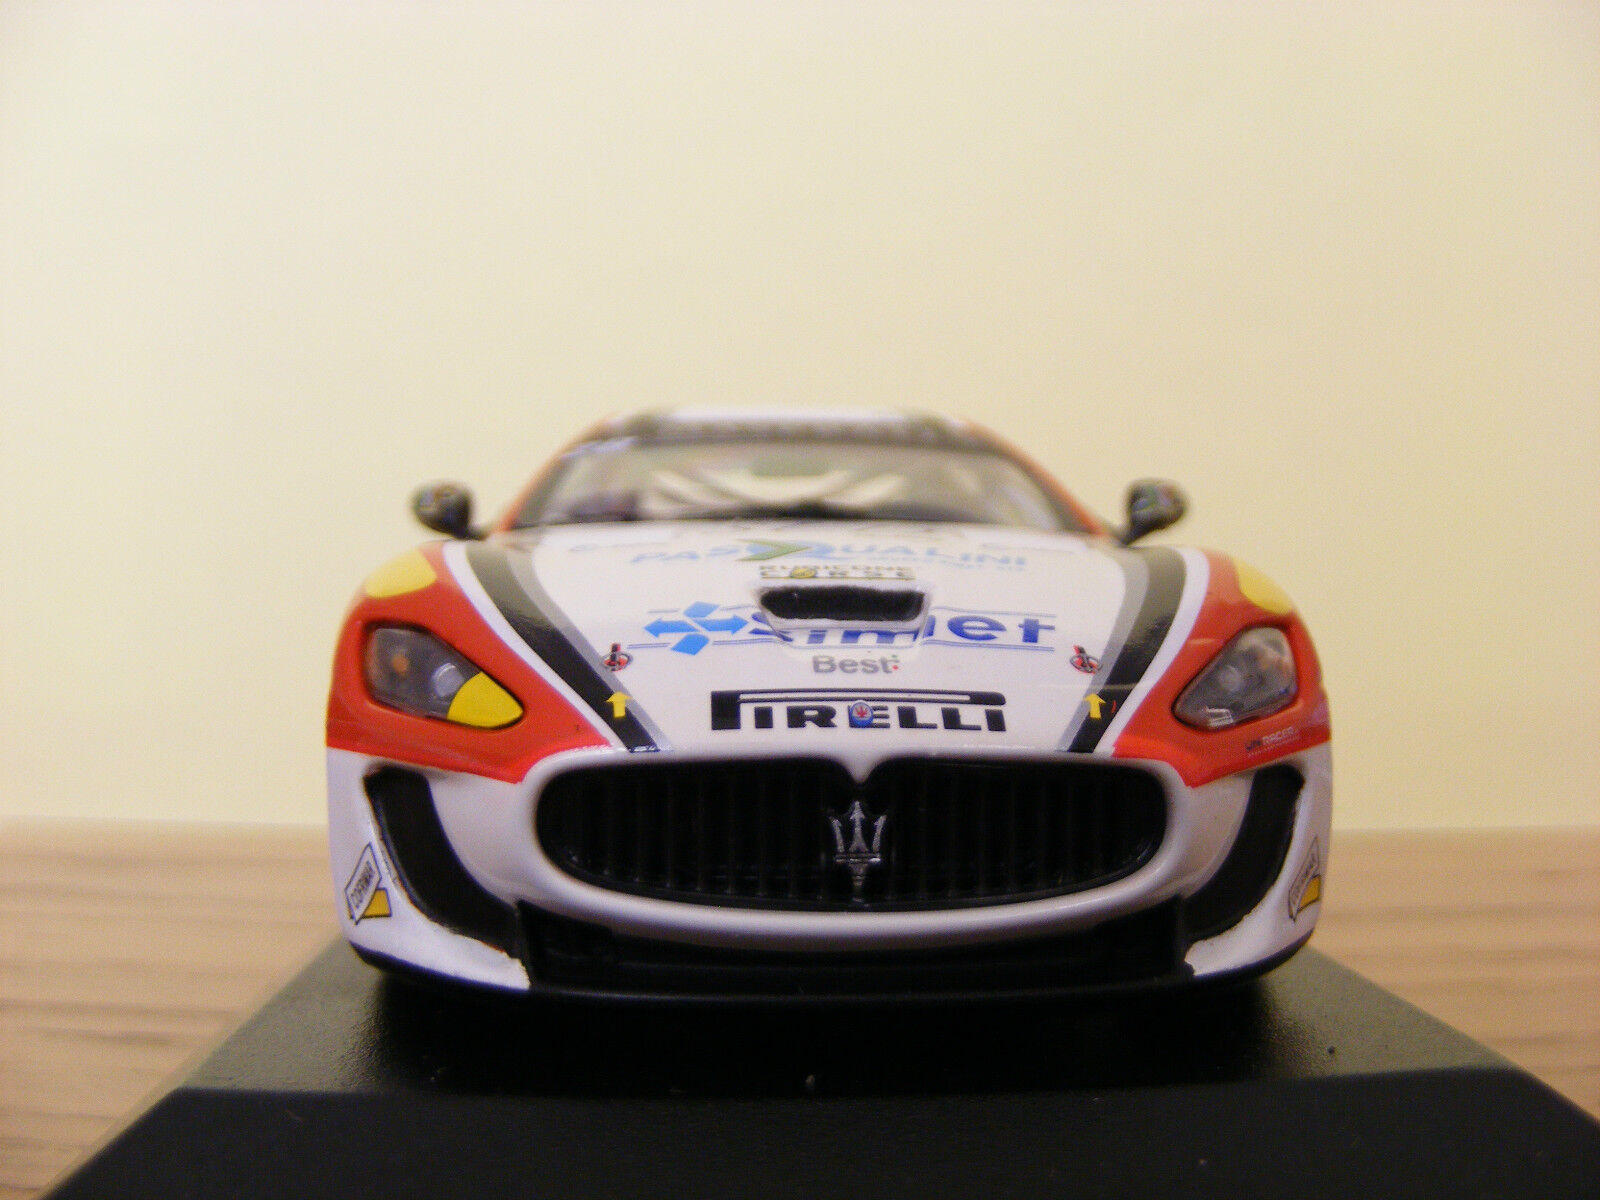 MASERATI Gran Turismo MC GT4 Test Car 1 of 1008 pcs MINICHAMPS 1 43 NLA